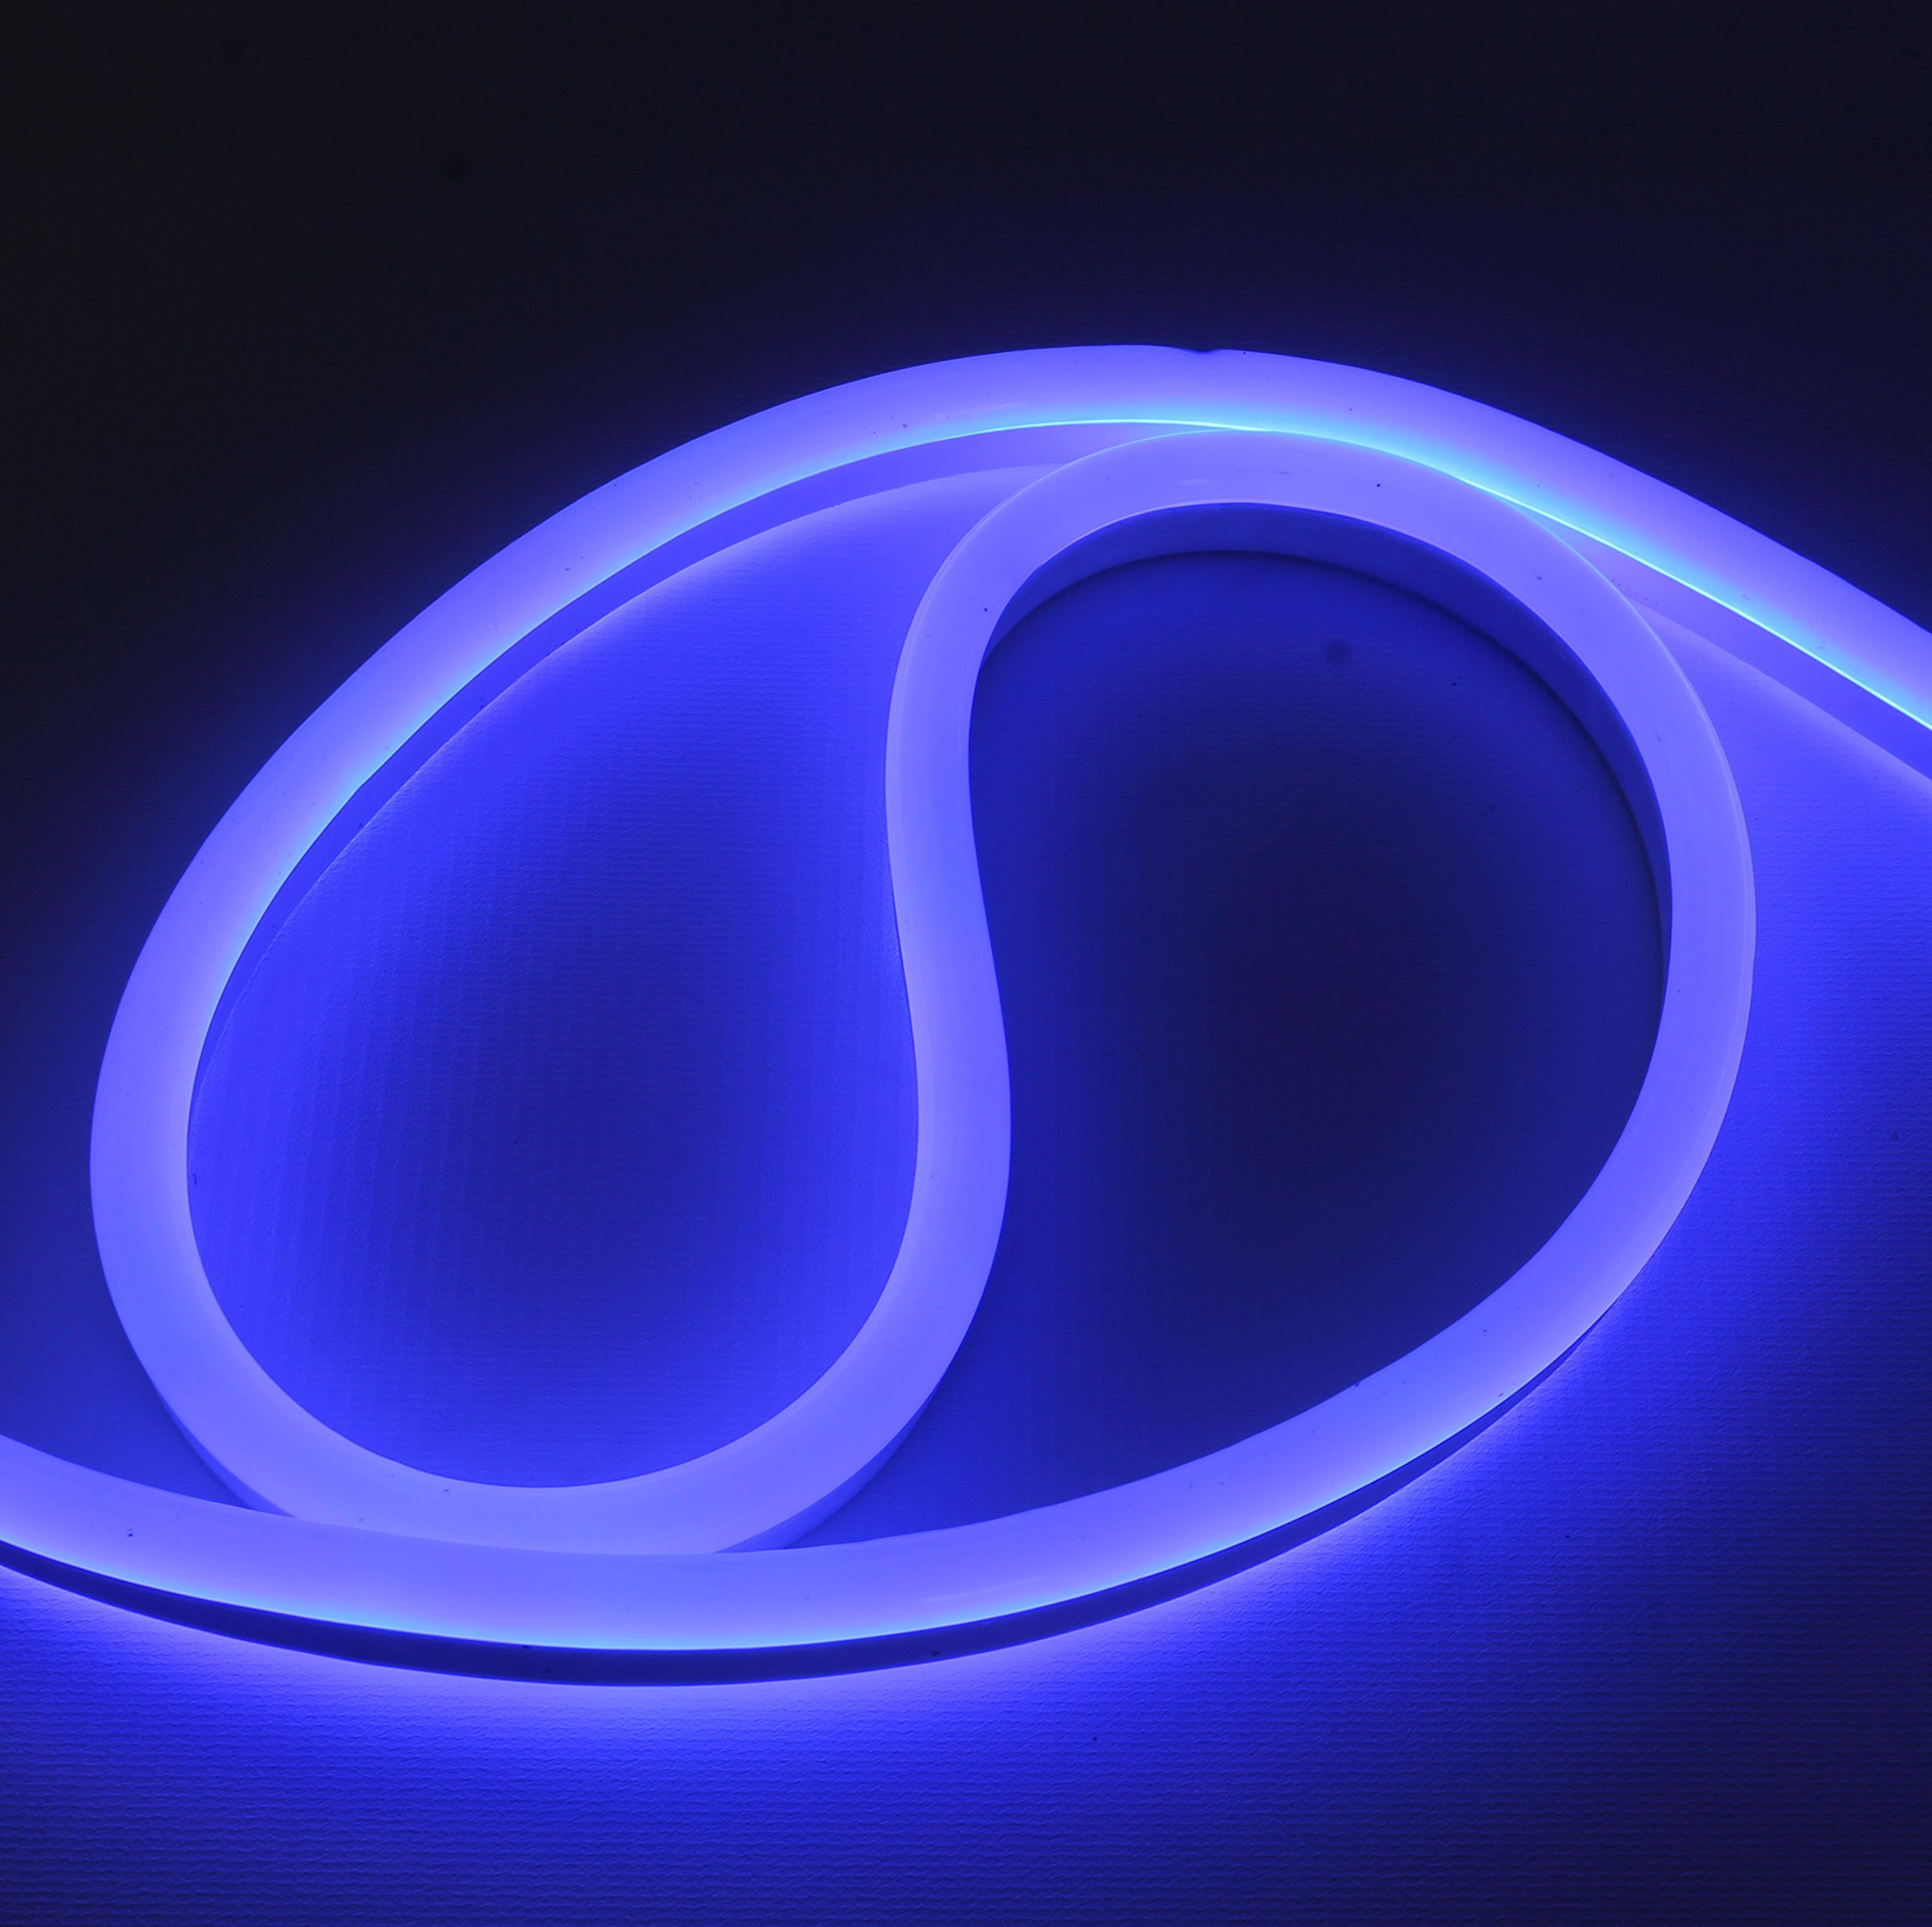 12 Volt LED Flex NEON Light Strip LED Neon Flex Light, 65 Ft, Blue Waterproof Resistant, Accessories Included Ideal For Home Improvement Outdoor Rope Lighting [Ready to use] (Blue) by TOPATOM